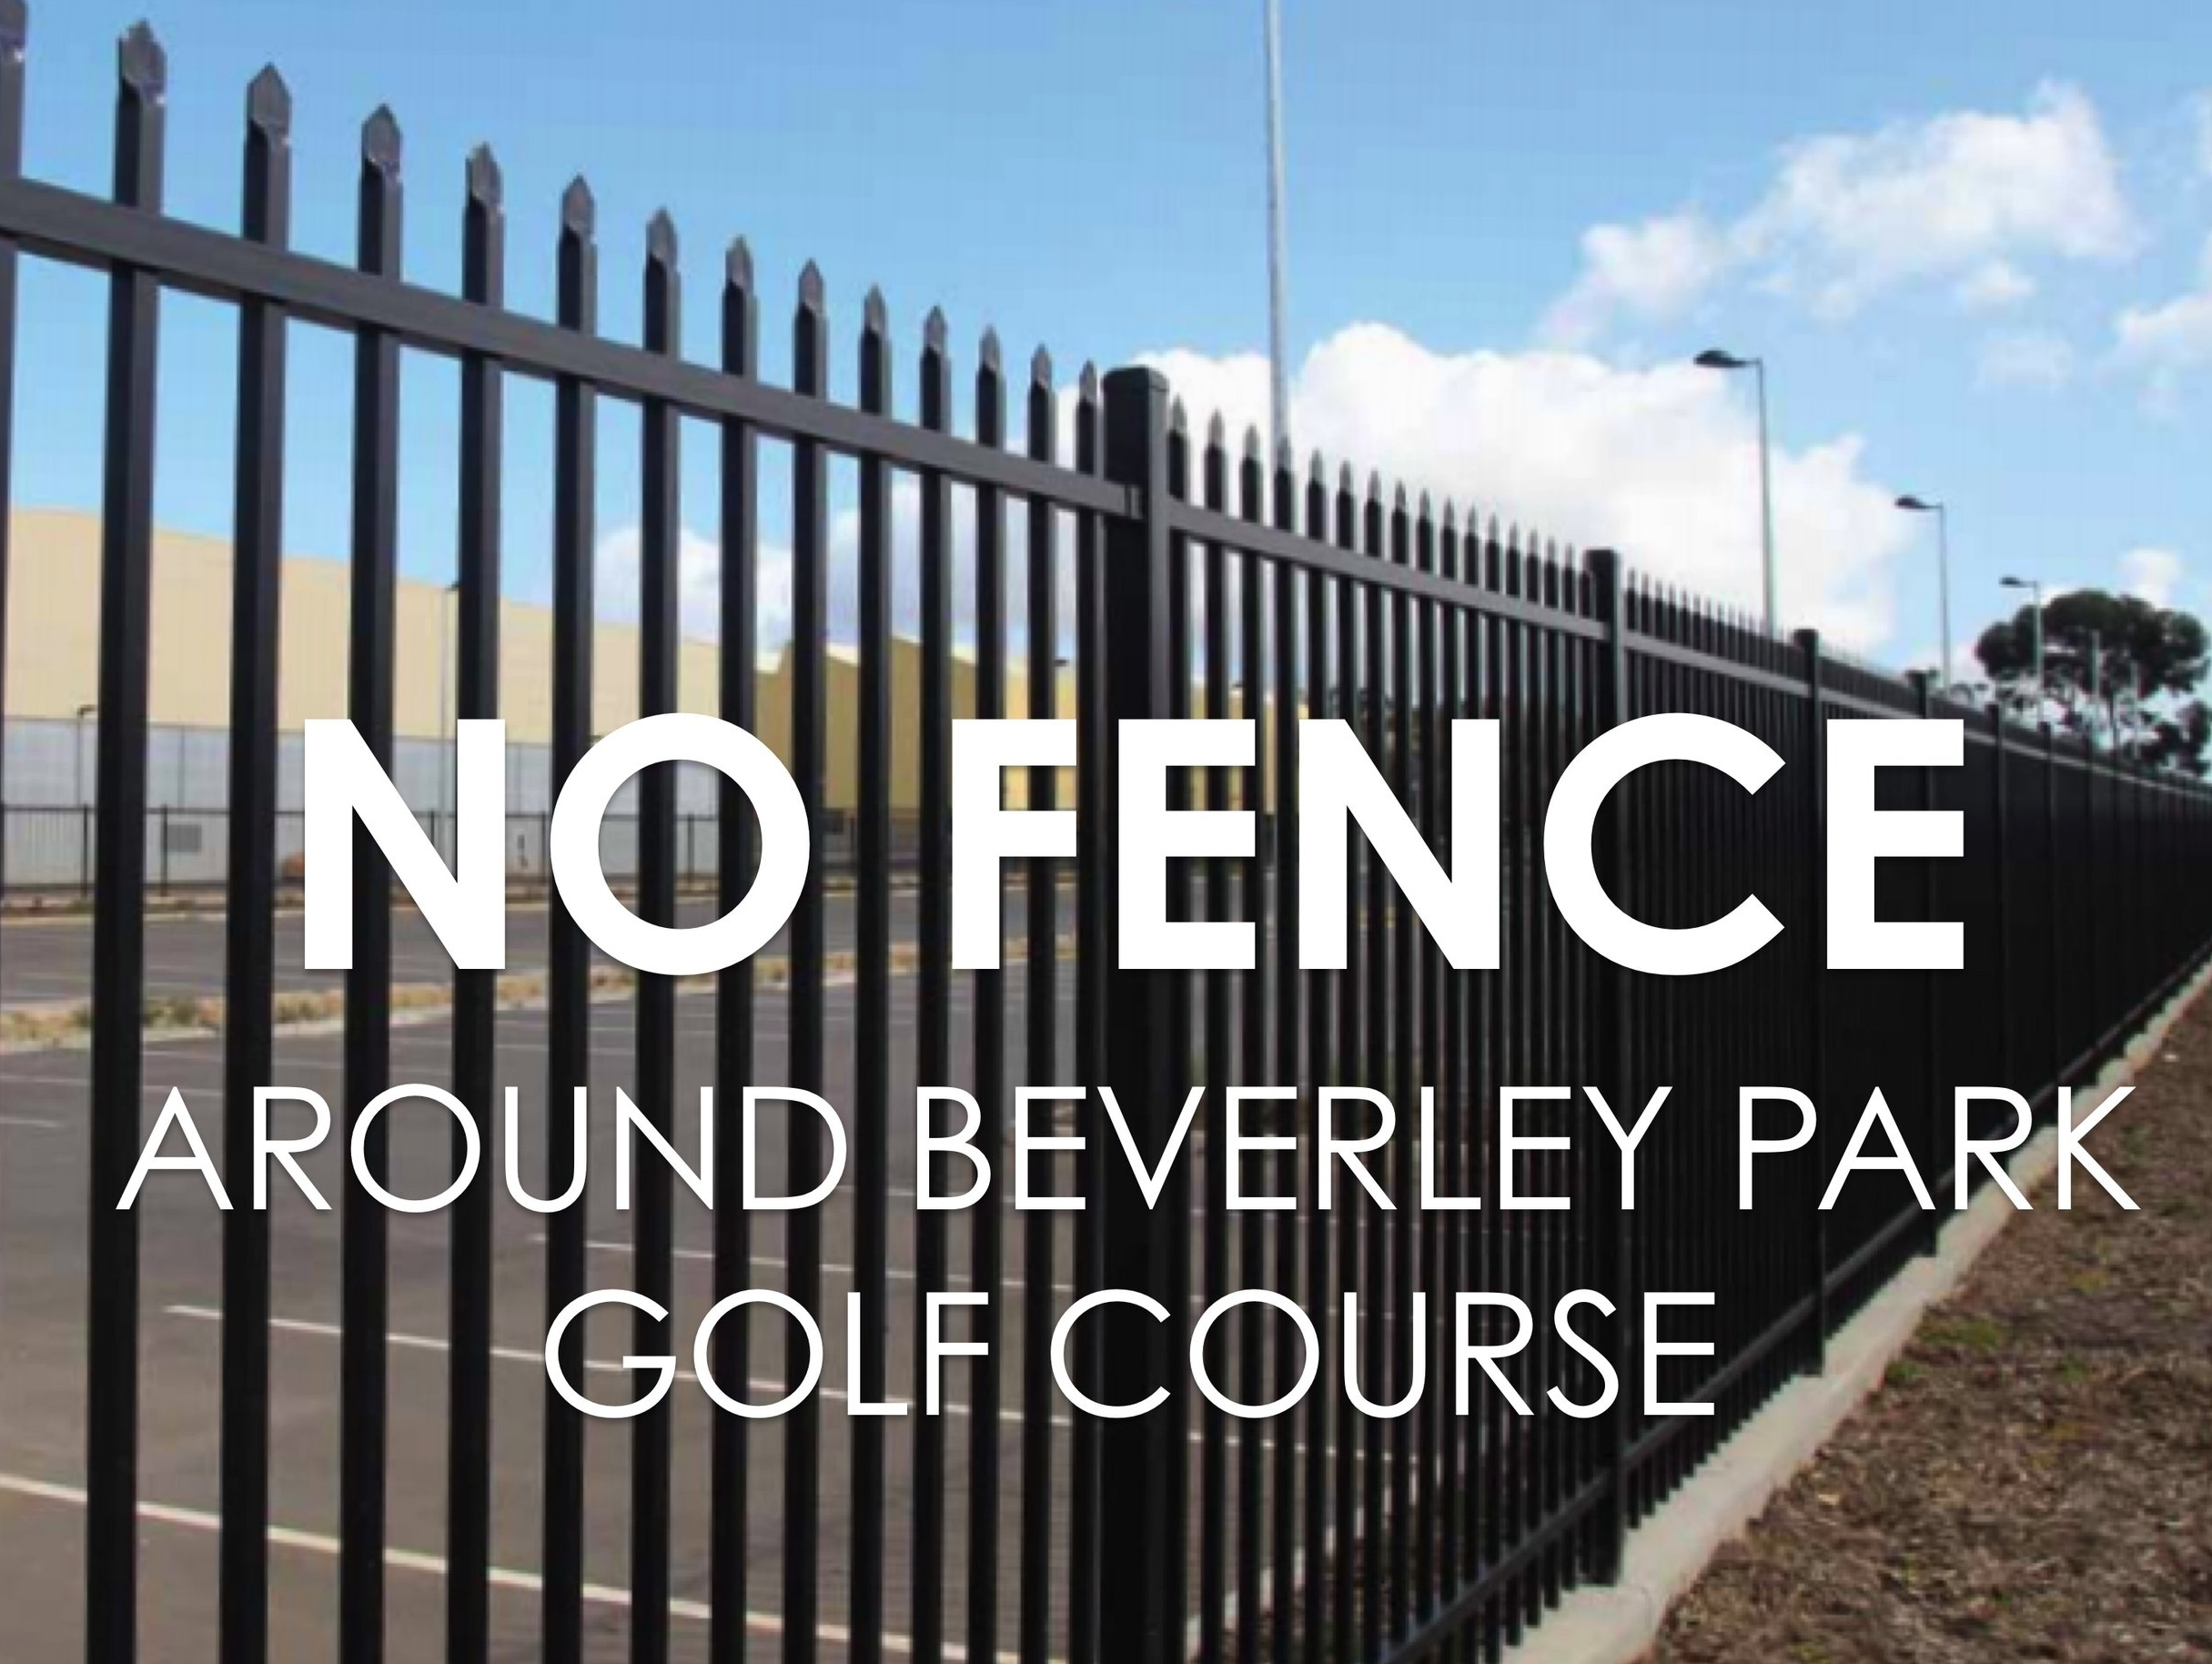 Type of fence proposed to be erected around the perimeter of the Beverley Park Golf Course.